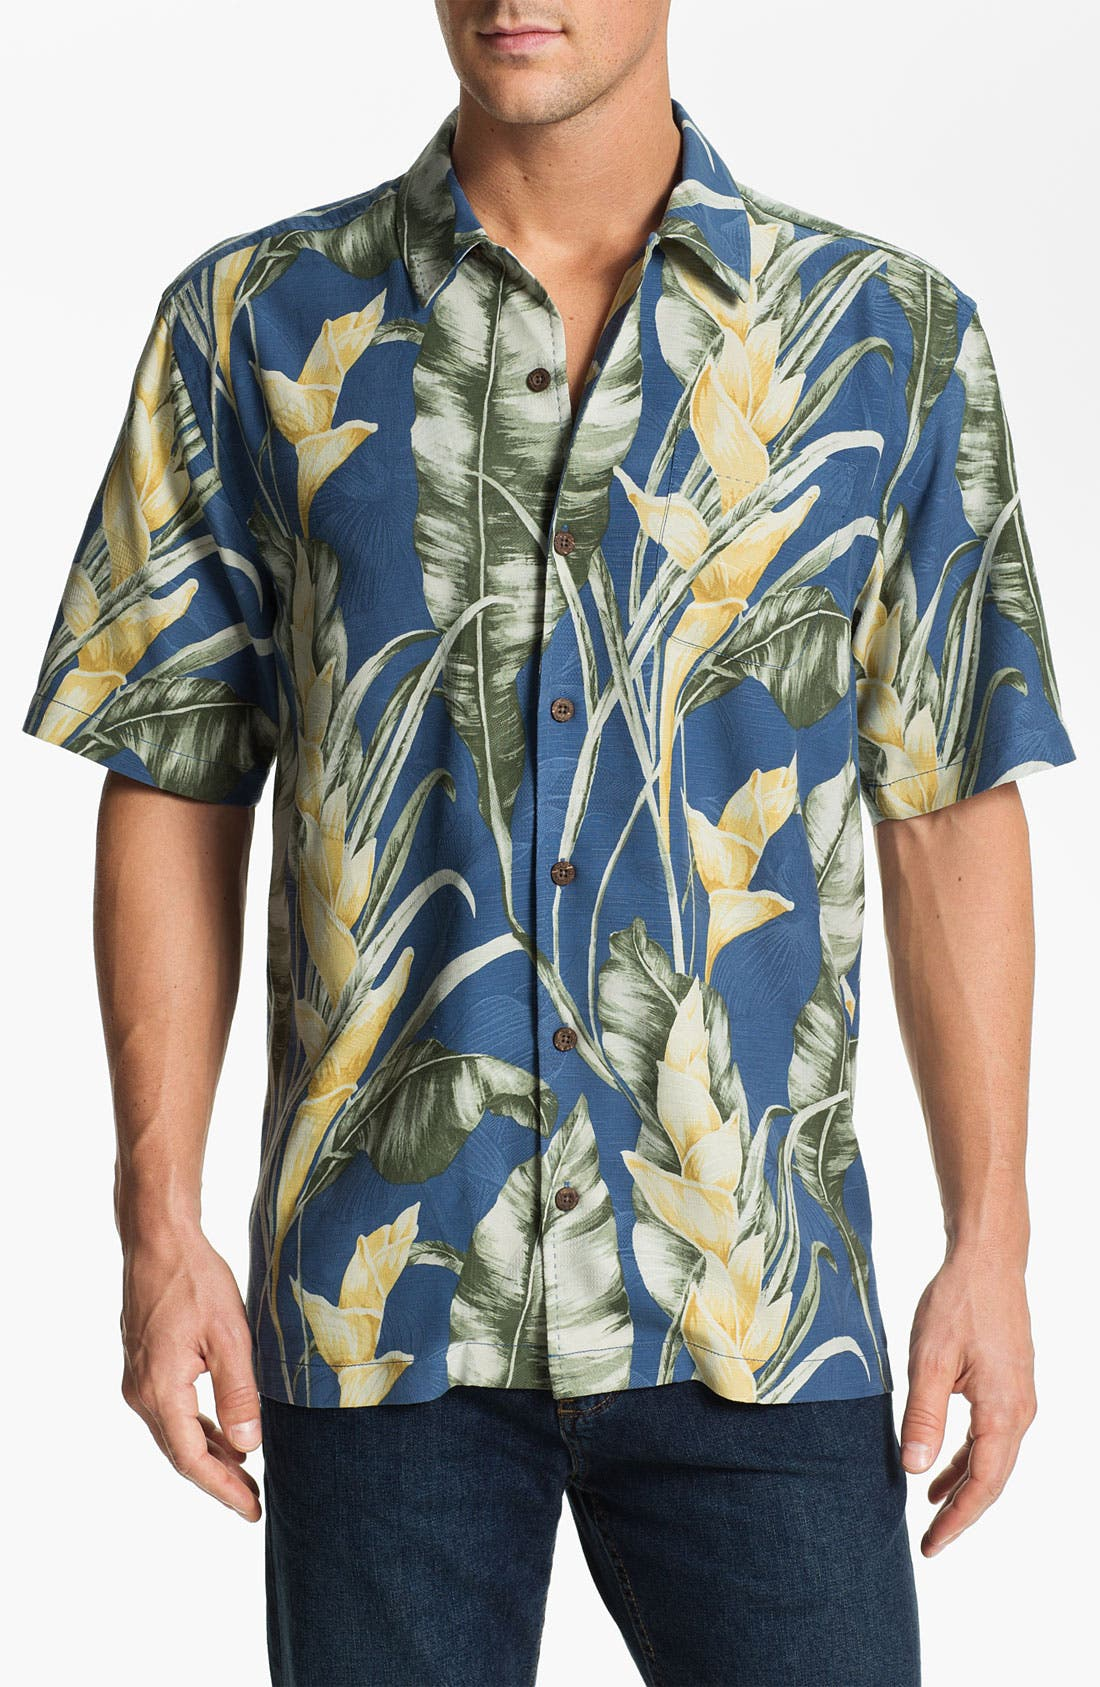 Alternate Image 1 Selected - Tommy Bahama 'Wind Waves' Silk Campshirt (Big & Tall) (Online Only)